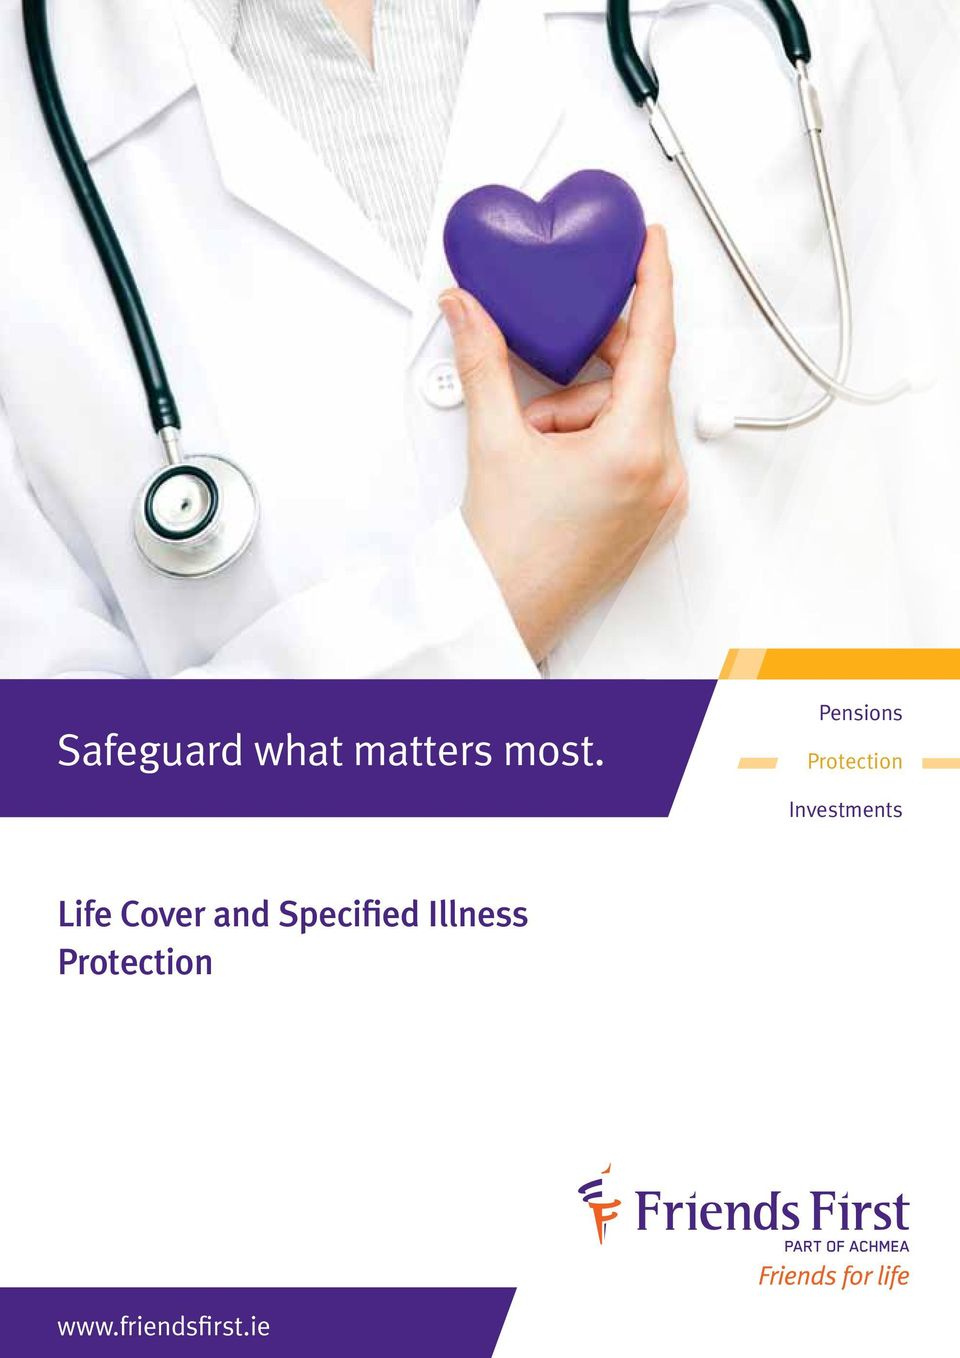 Life Cover and Specified Illness